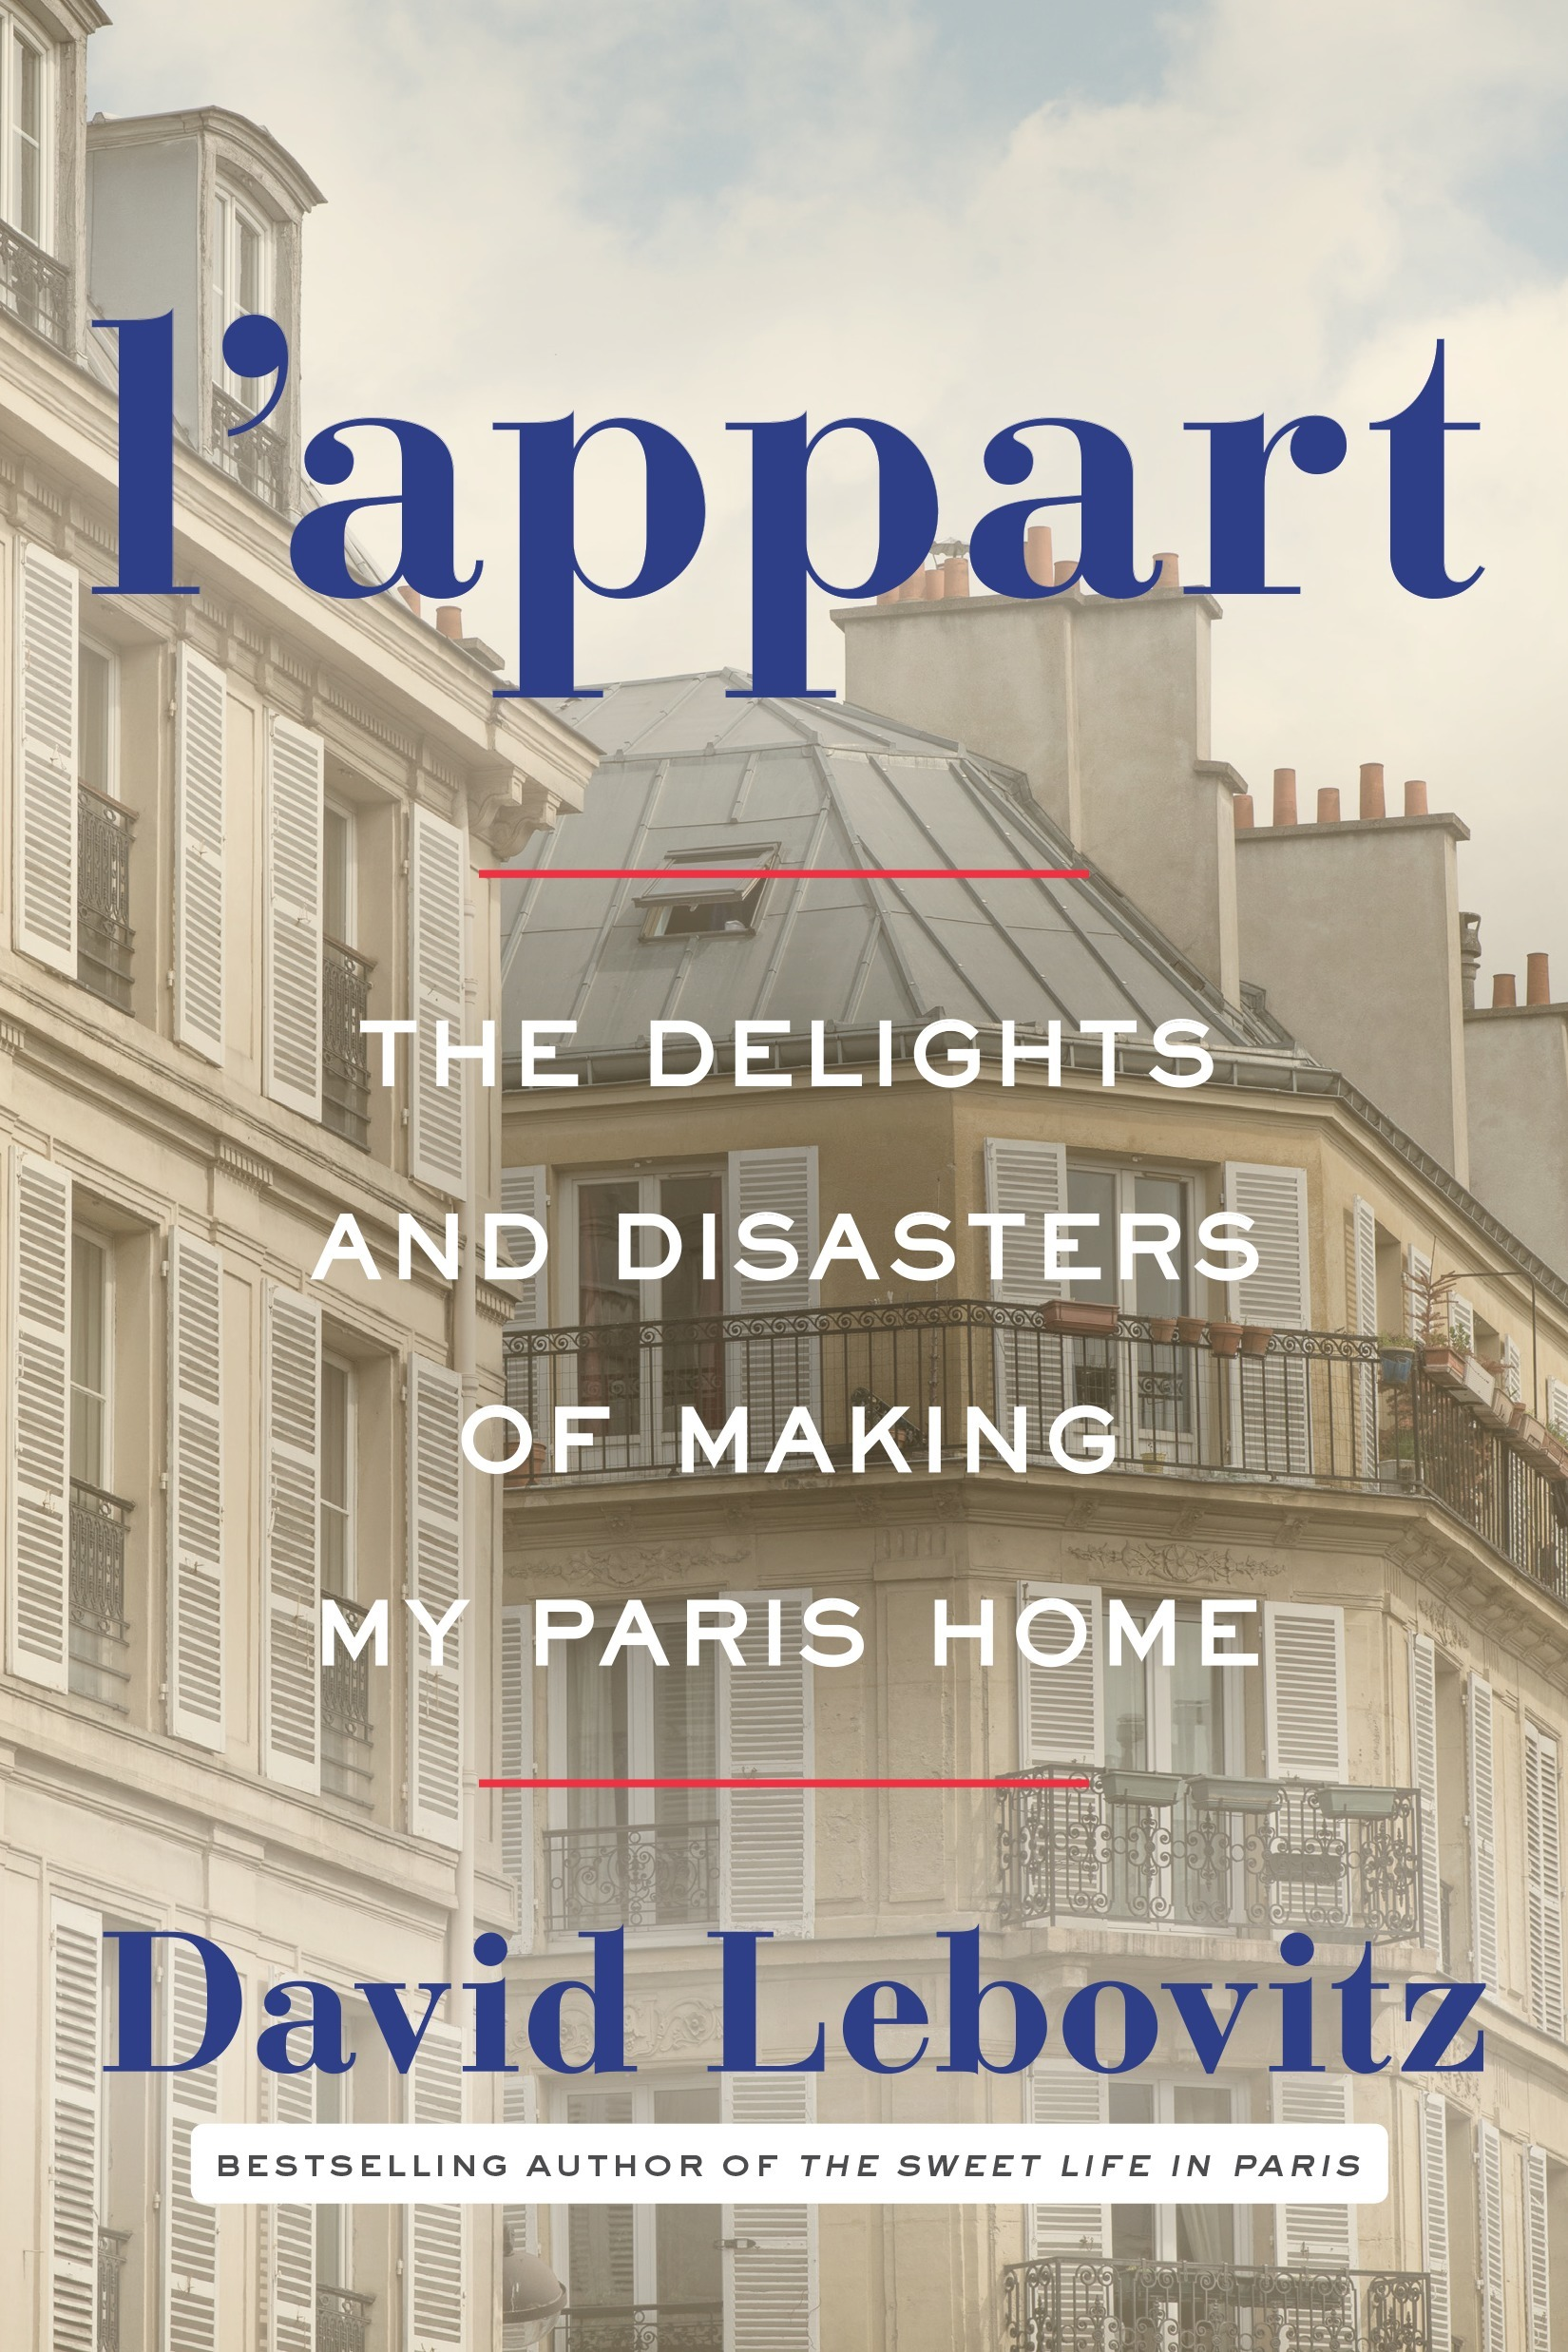 December and January Book Events and Paris Trip Giveaway!